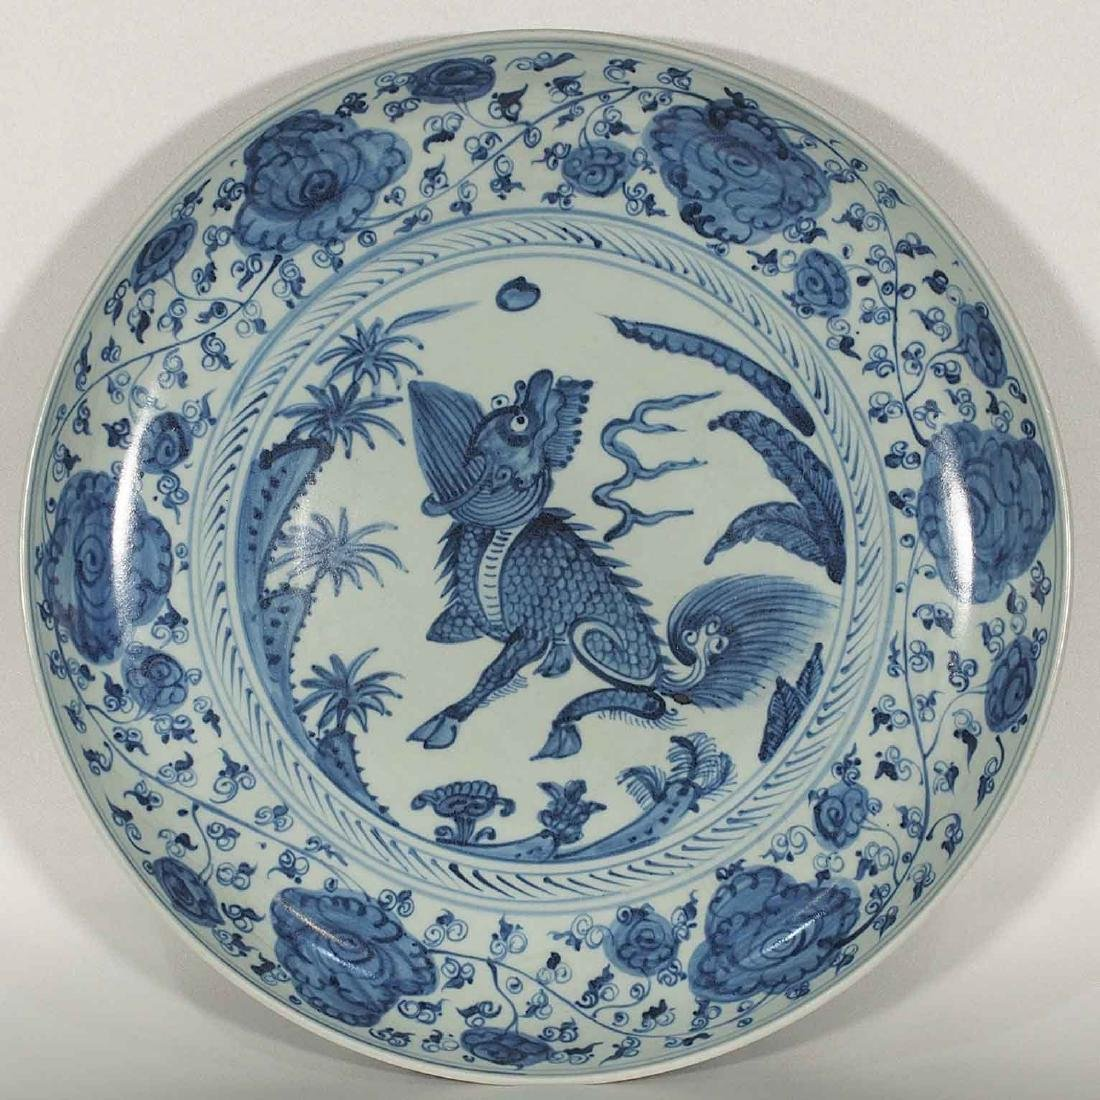 Charger with Qilin Design, Ming Dynasty